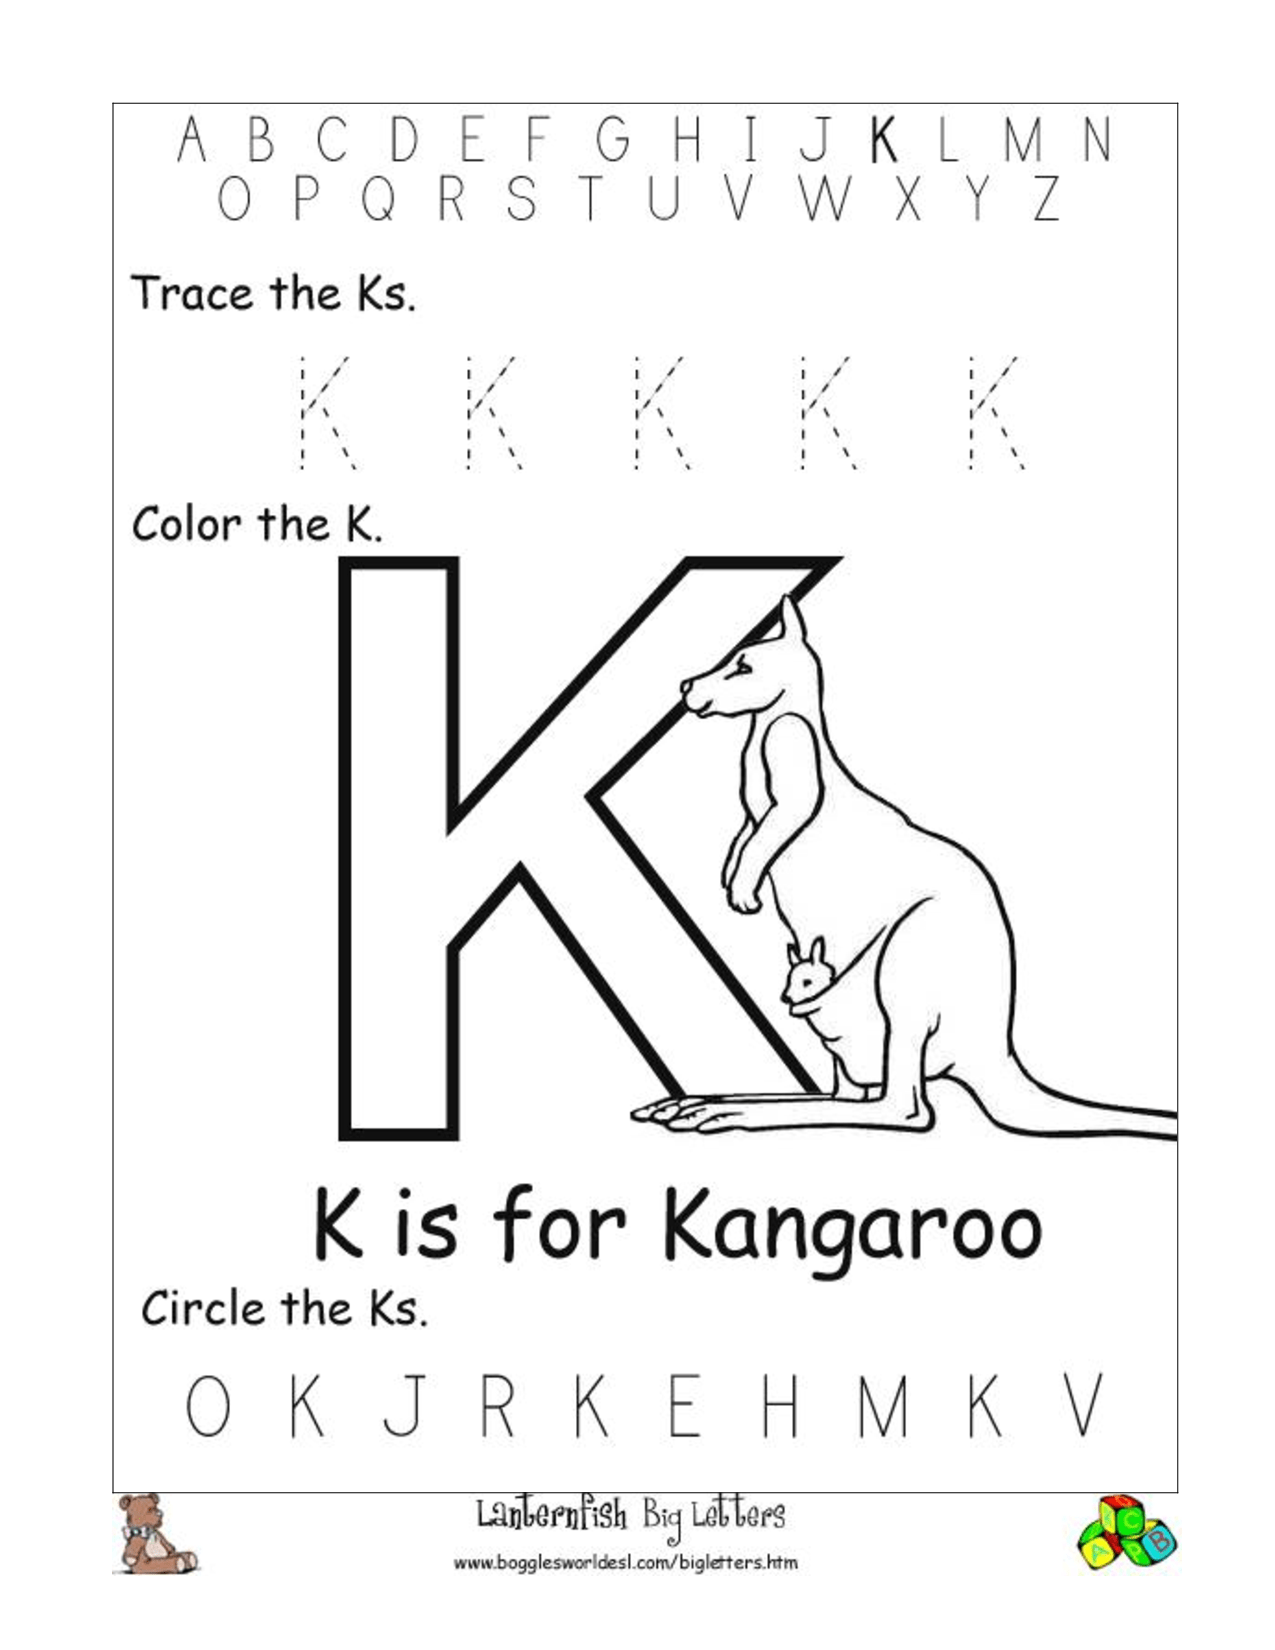 12 Best Images Of Y Hidden Letter Worksheets